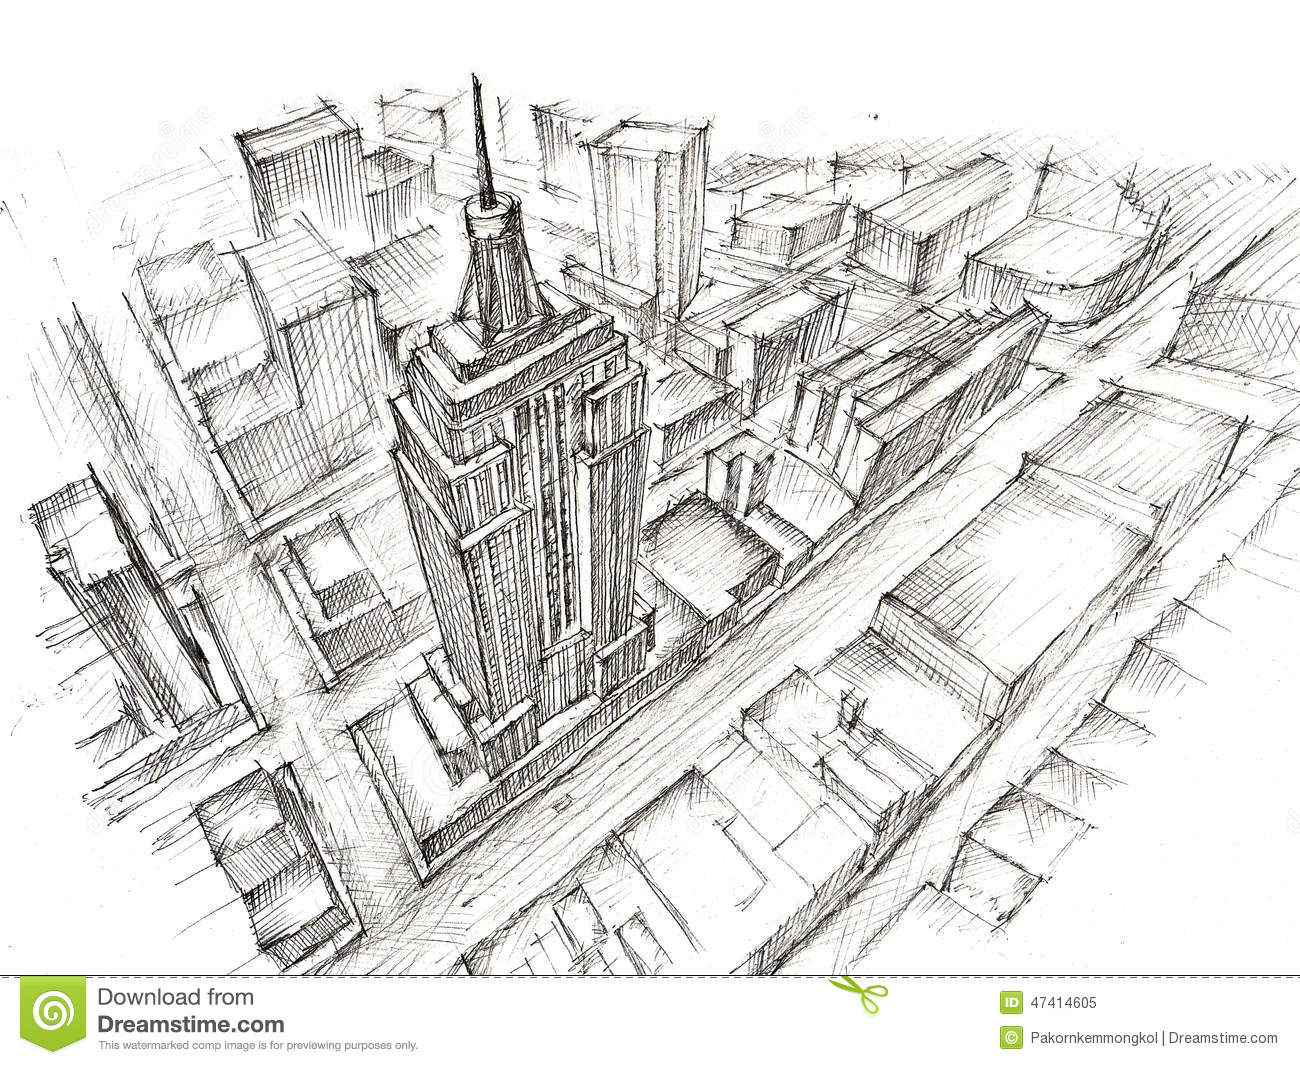 Image of resolution 976x476 pixels, empire state building dimensions drawing 70739 the images come in various sizes